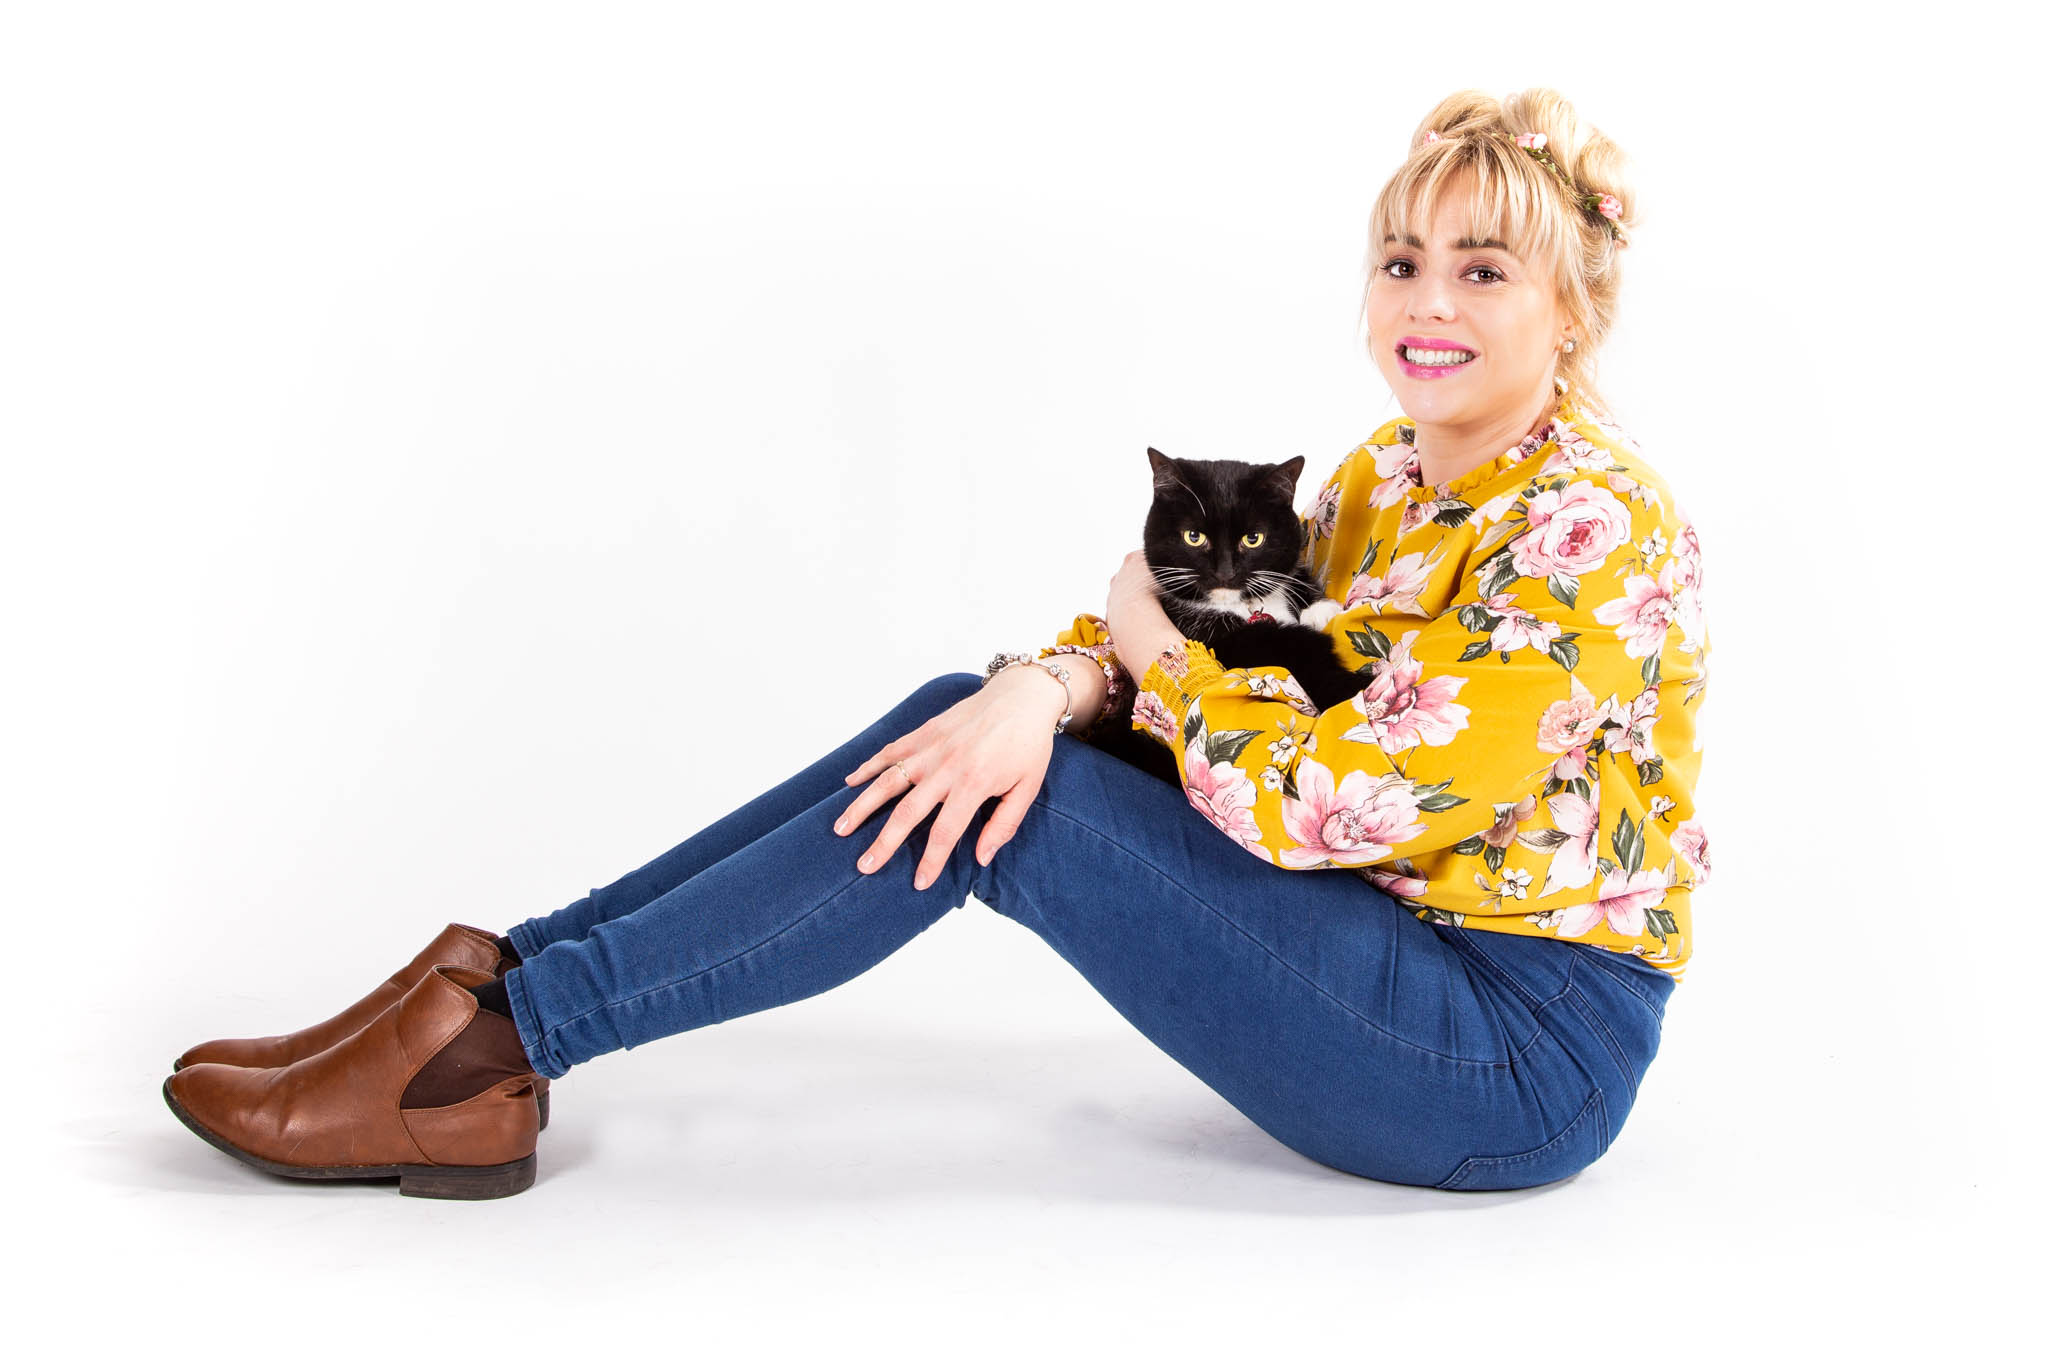 Lady with Cat posing